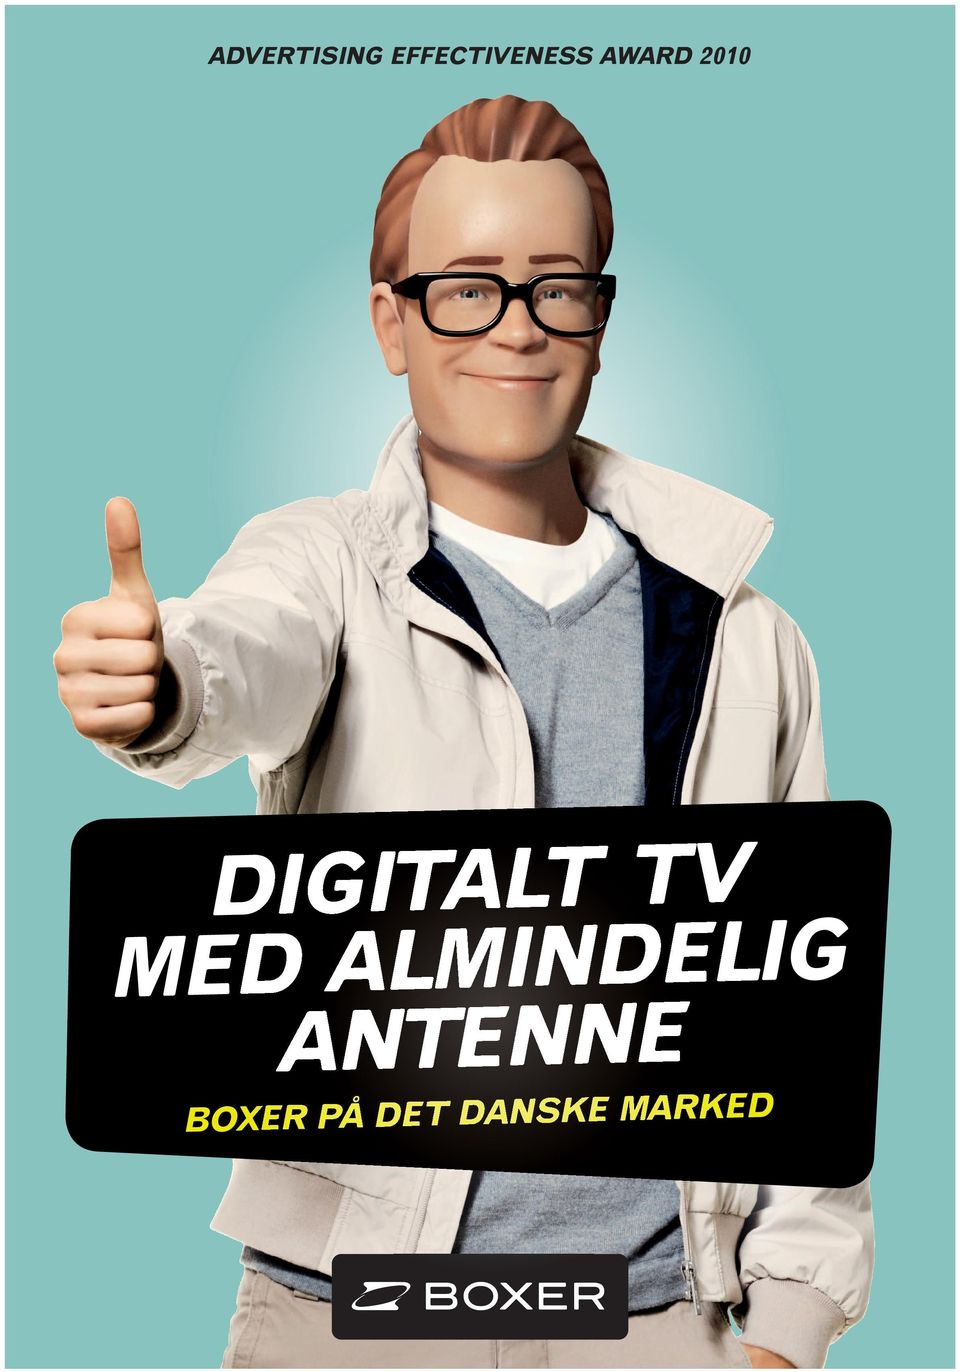 Digitalt tv med